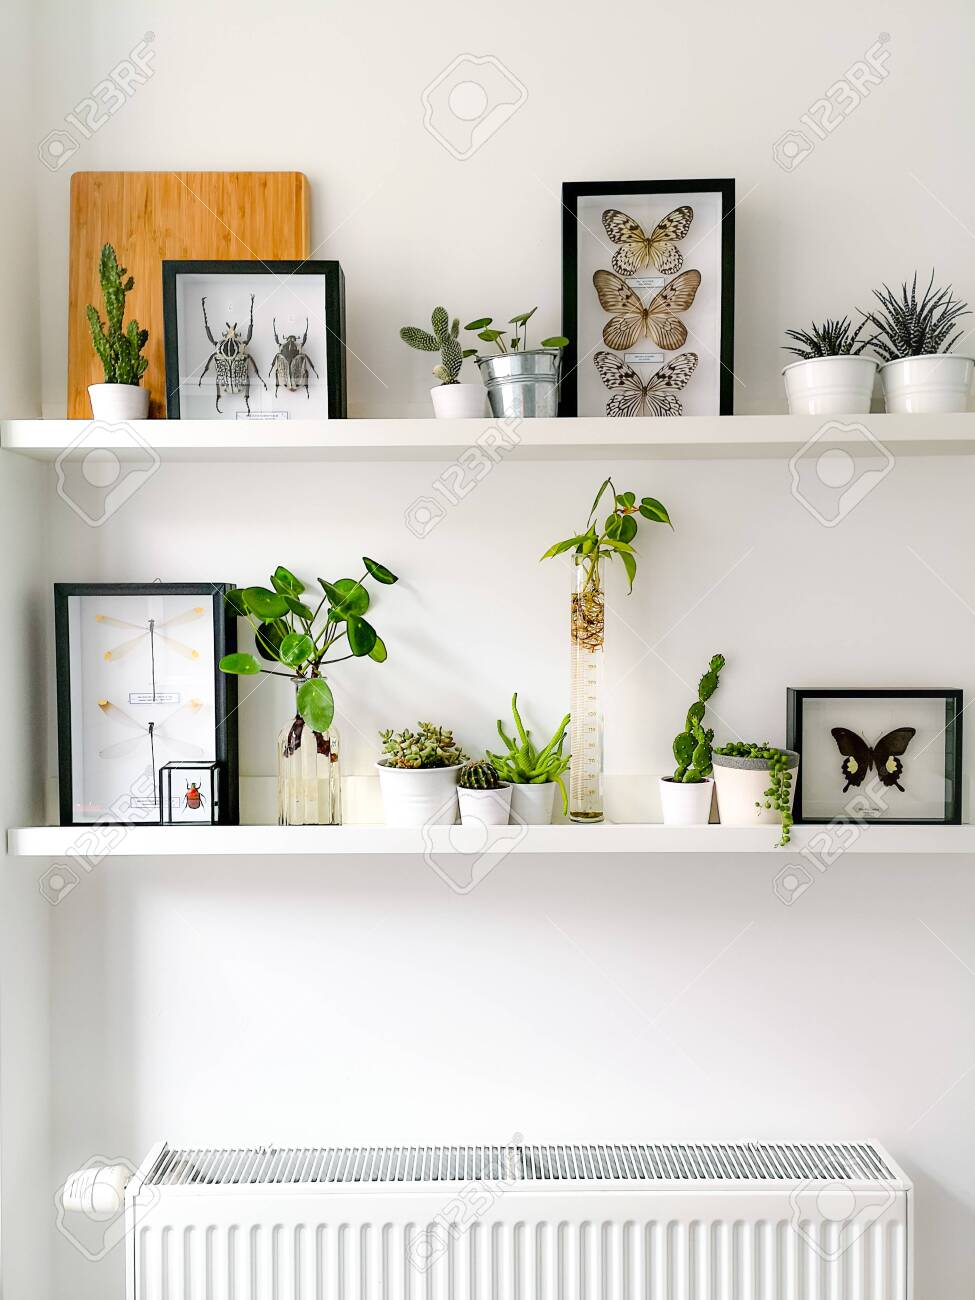 White hanging shelves with numerous plants and framed taxidermy insect art such as butterflies, beetles and dragonflies - 127147150